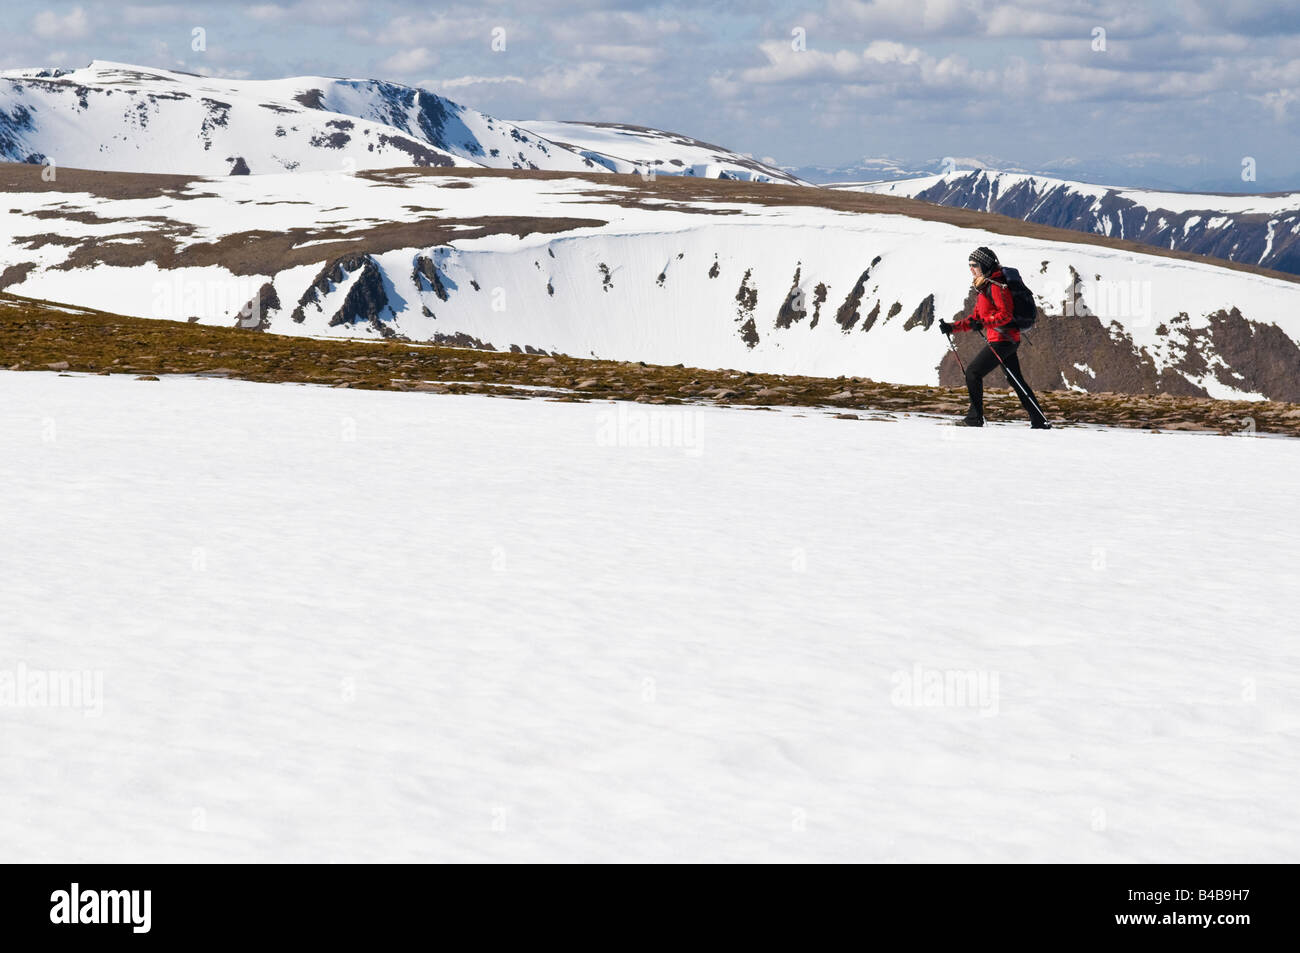 Female hiker in red jacket crosses snowfield near summit of Cairn Lochan in the Cairngorm mountains, Scotland - Stock Image